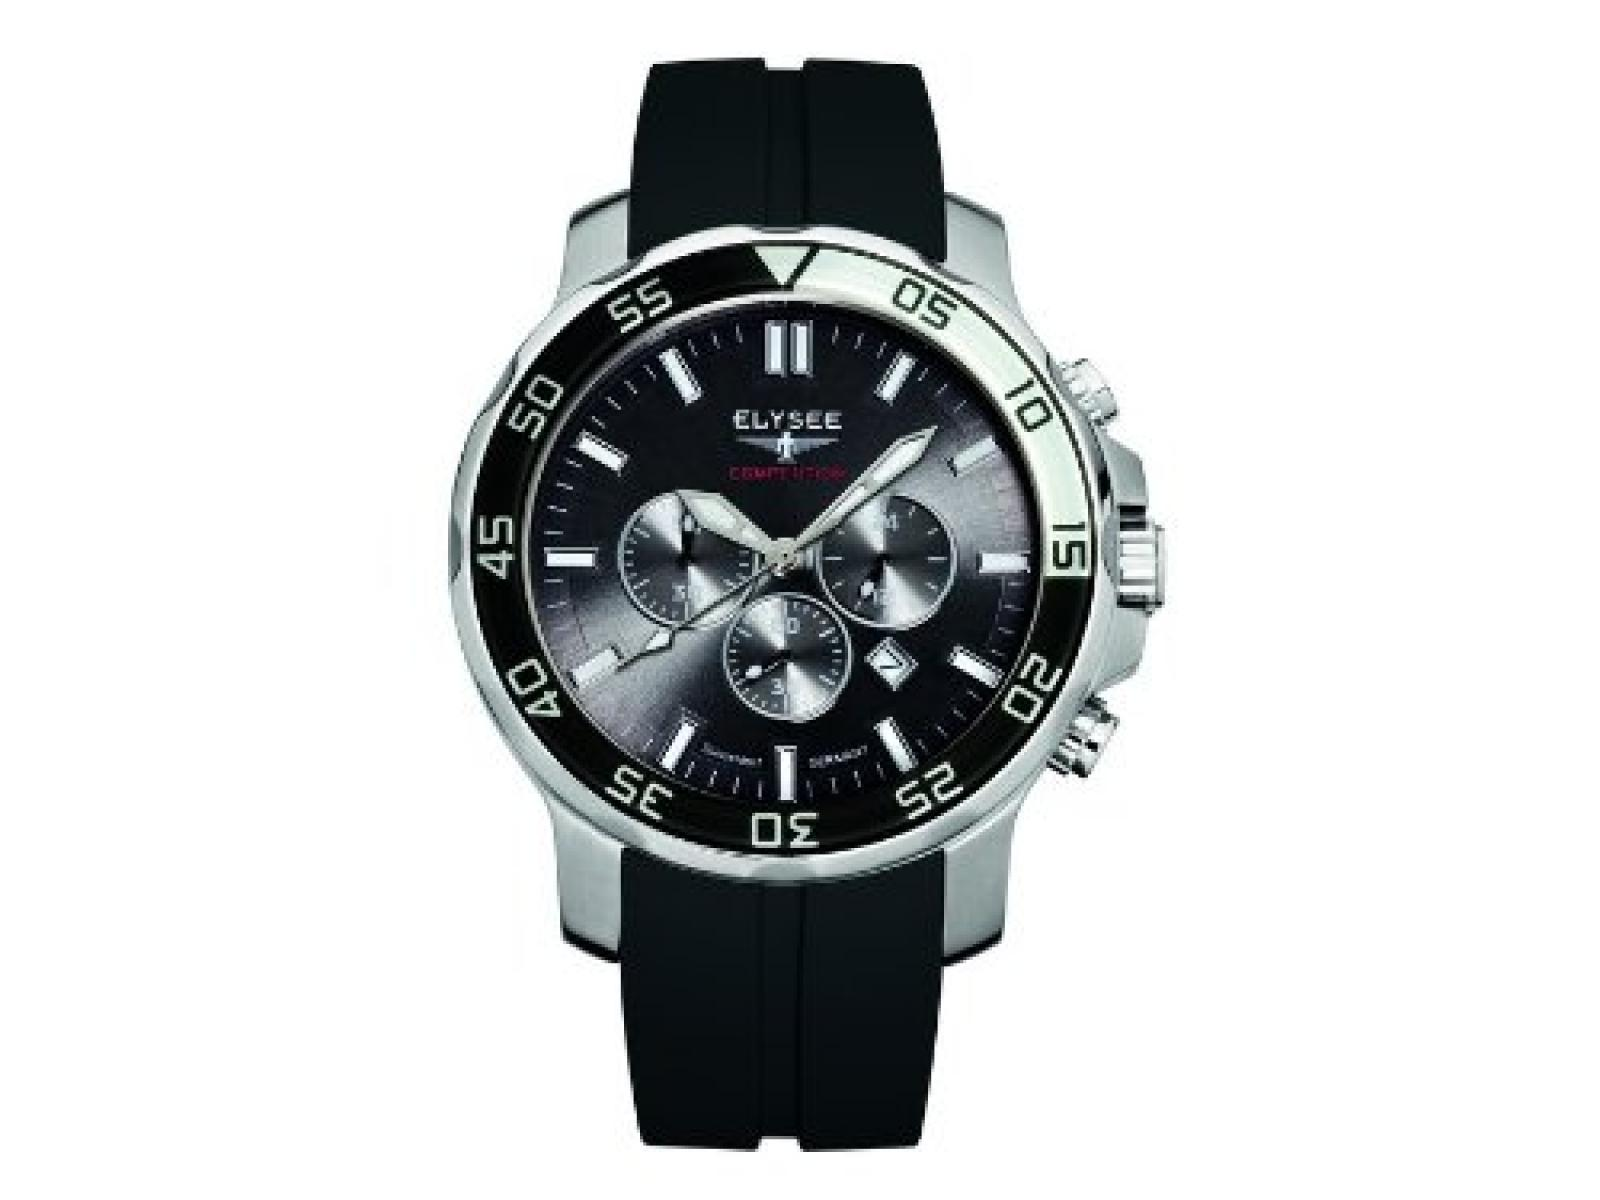 Elysee Herren Chronograph Competition Edition QUALIFIED 48000